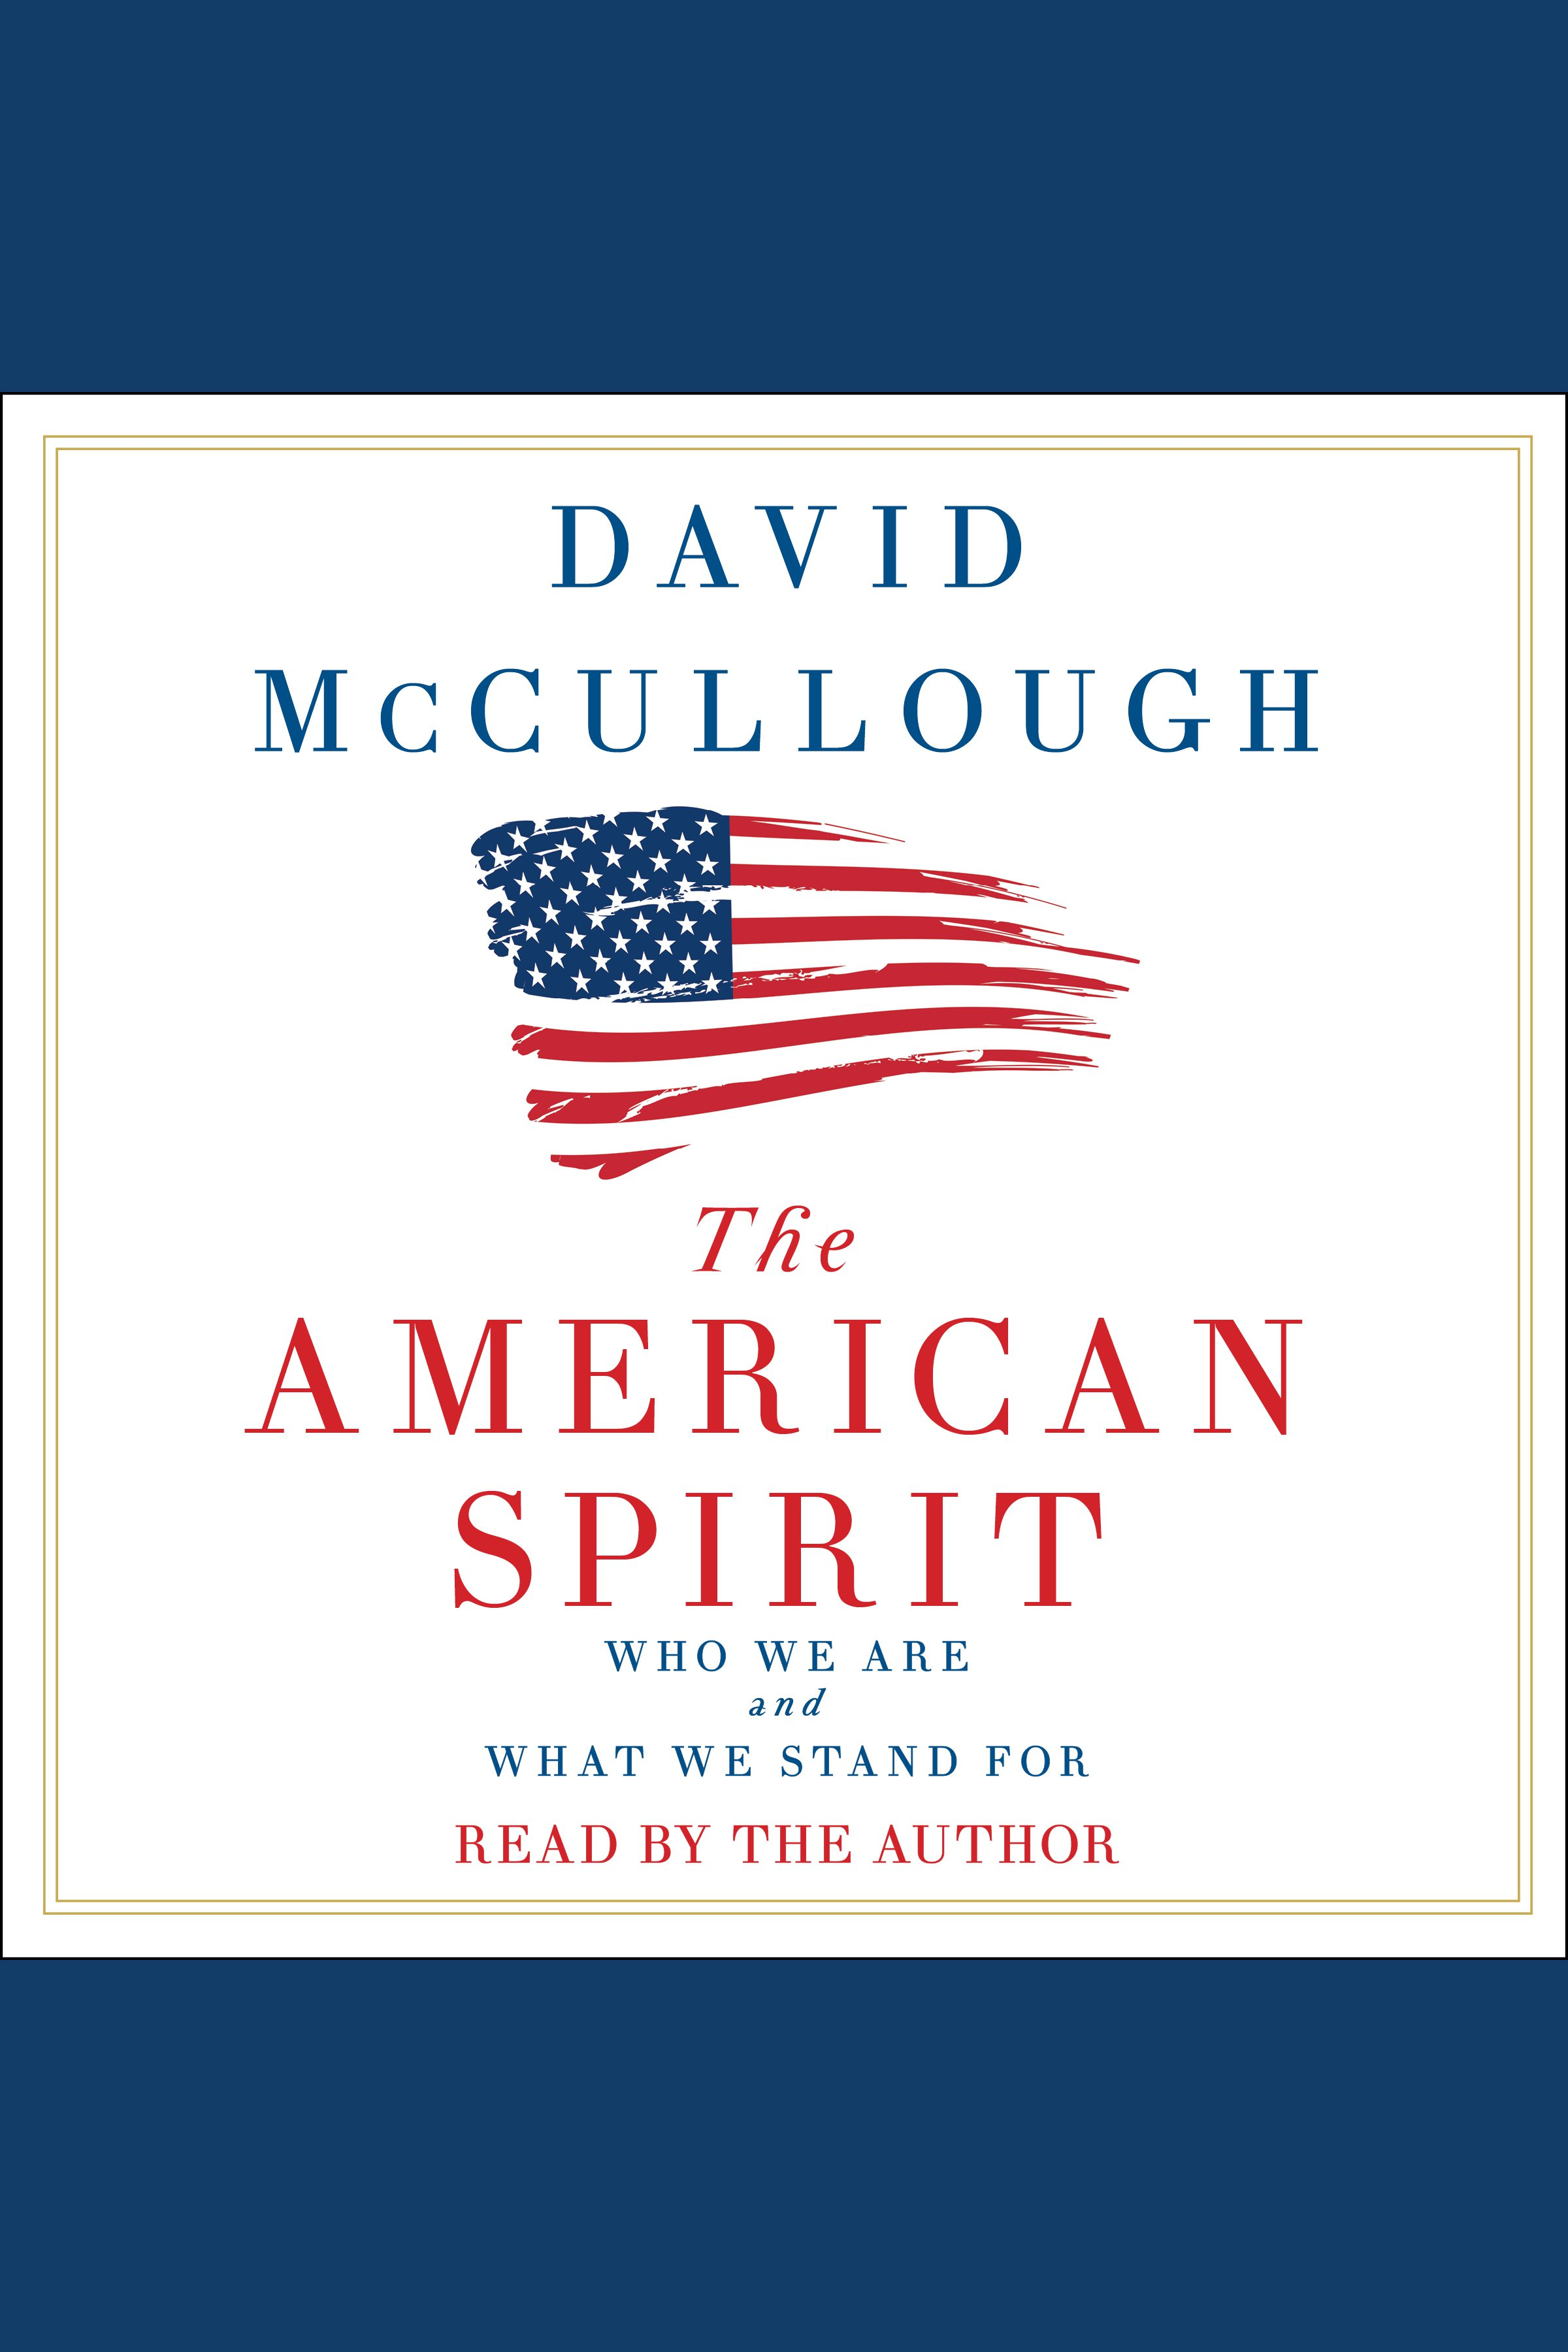 The American spirit [AudioEbook] : who we are and what we stand for